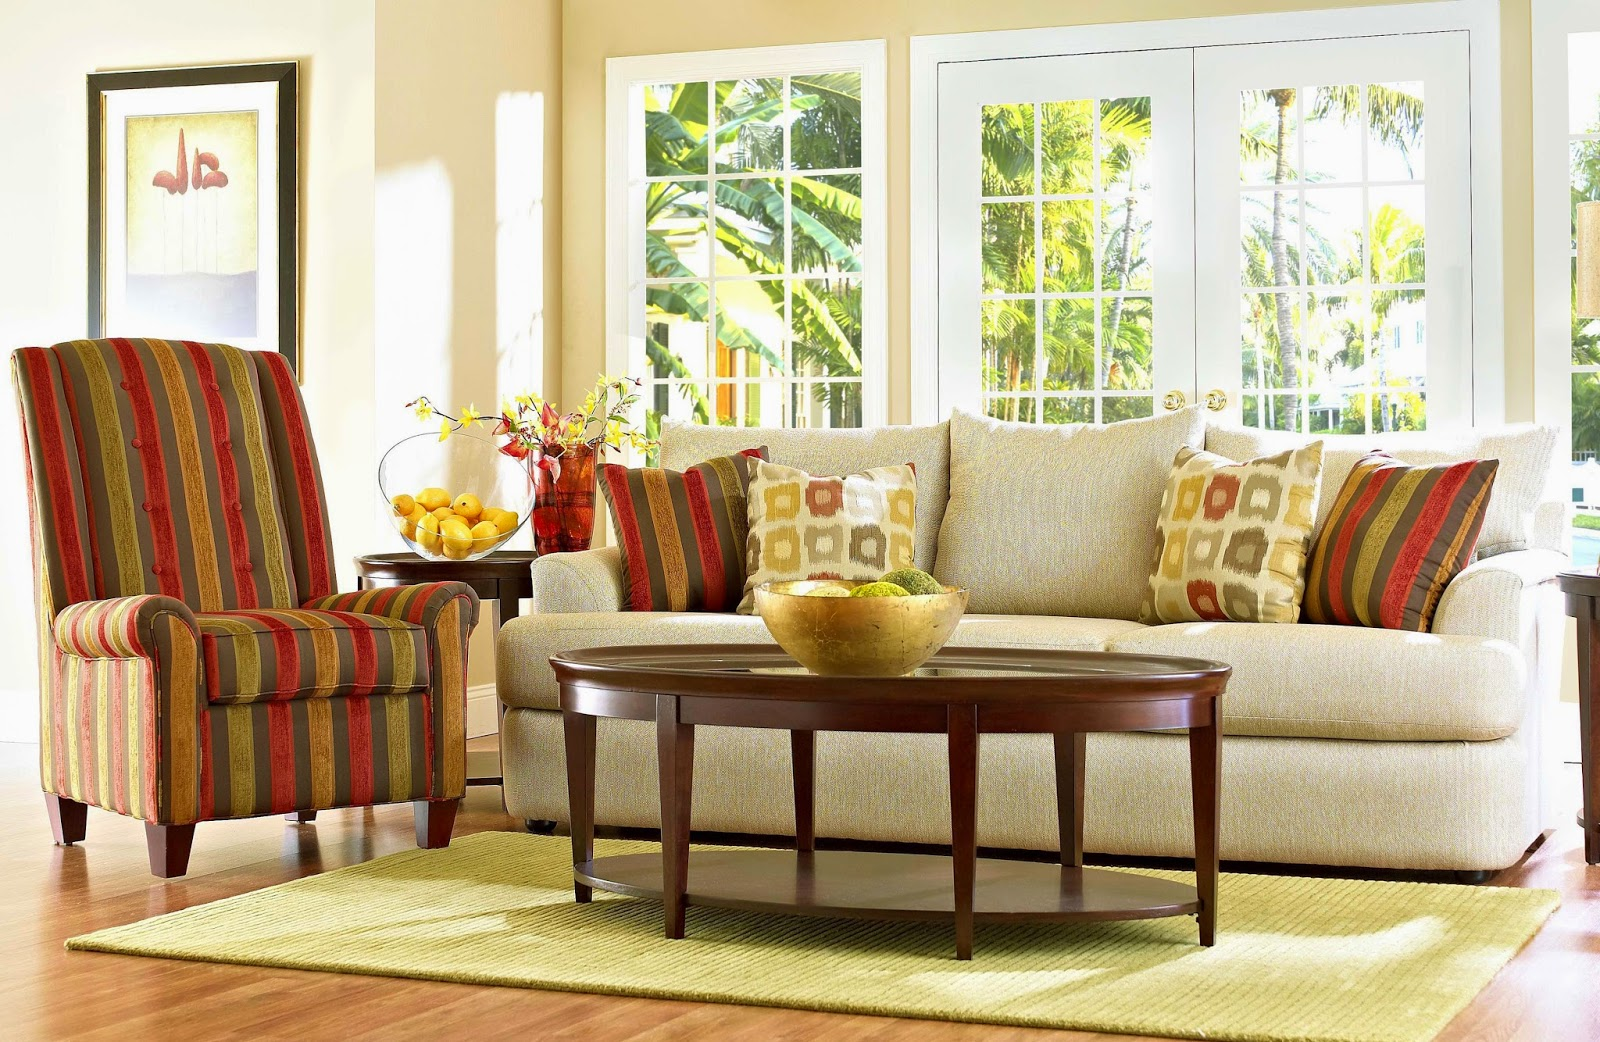 Bon Select Upholstery Fabrics For Your Custom Upholstery Design That Match With  Your Interior Designs, Use Different Fabrics Like Burlap Fabric, Floral  Fabric ...